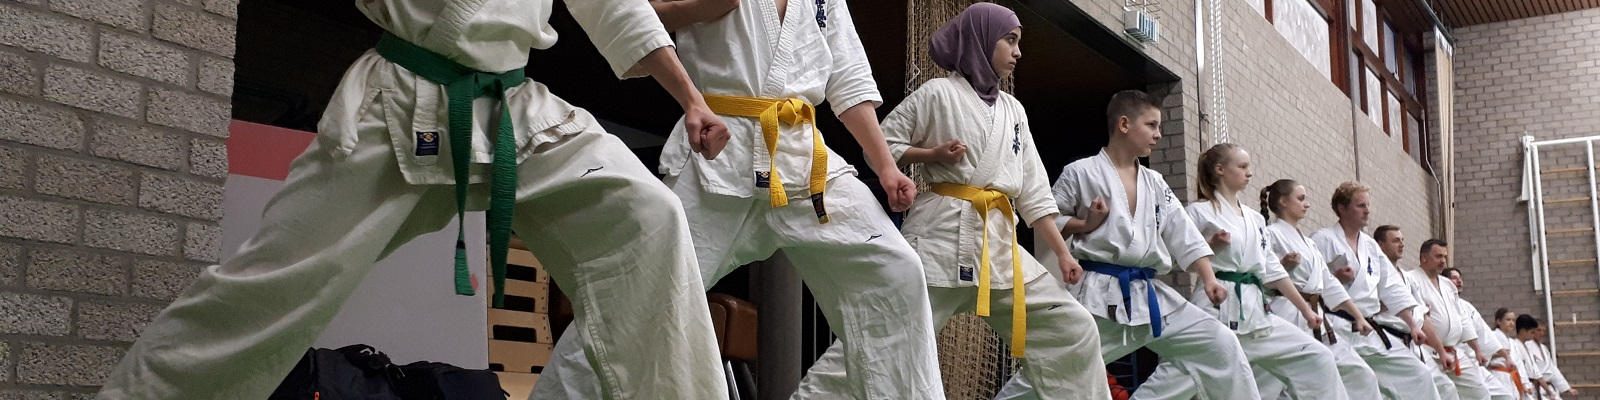 Interesse in kyokushin karate?